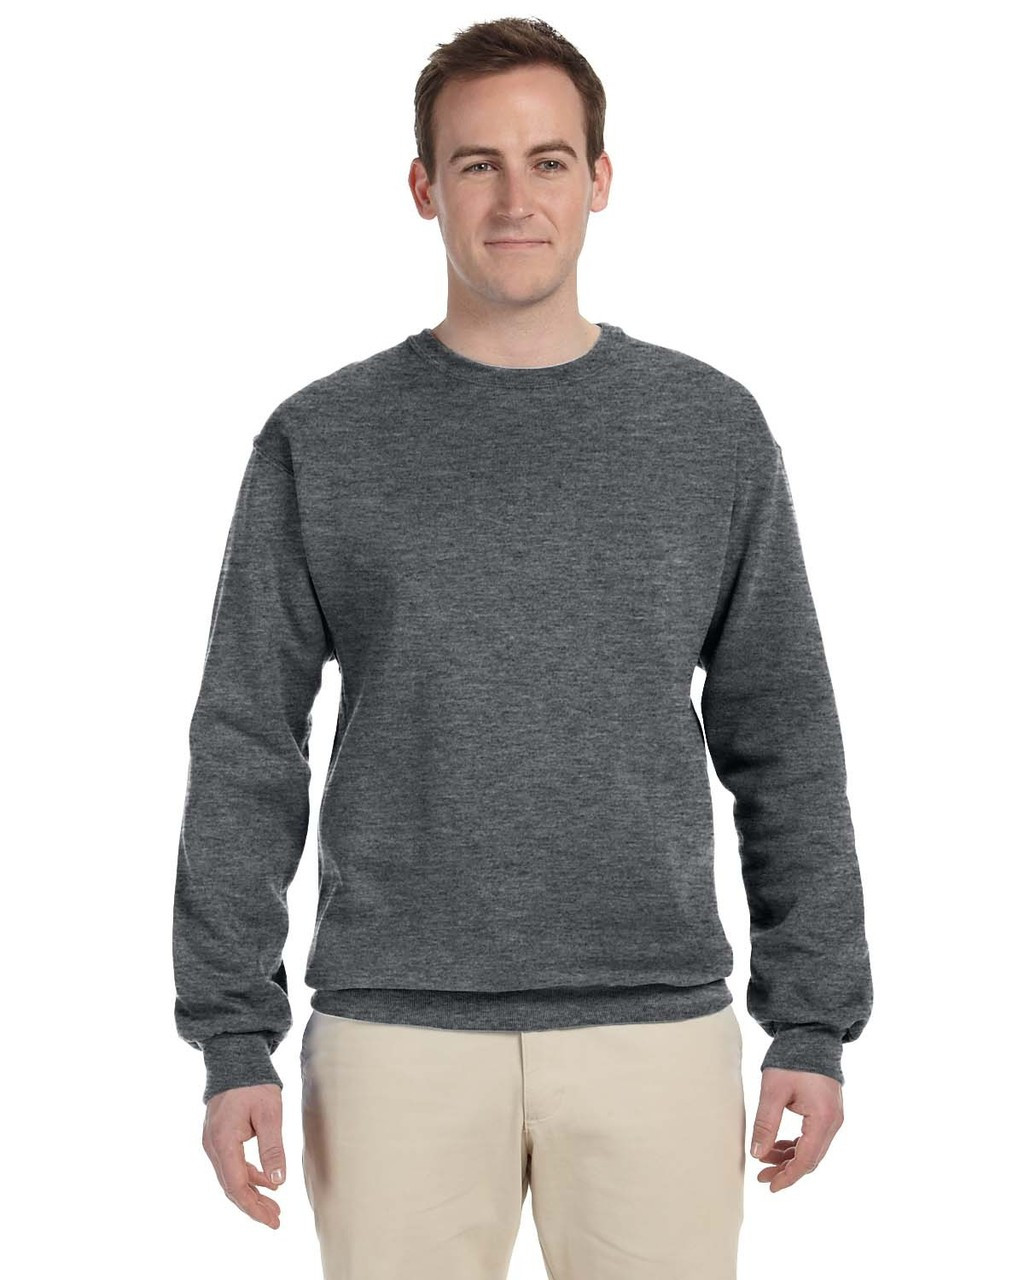 Athletic Heather - 82300 Fruit of the Loom Supercotton™ Fleece Crew Sweater | Blankclothing.ca